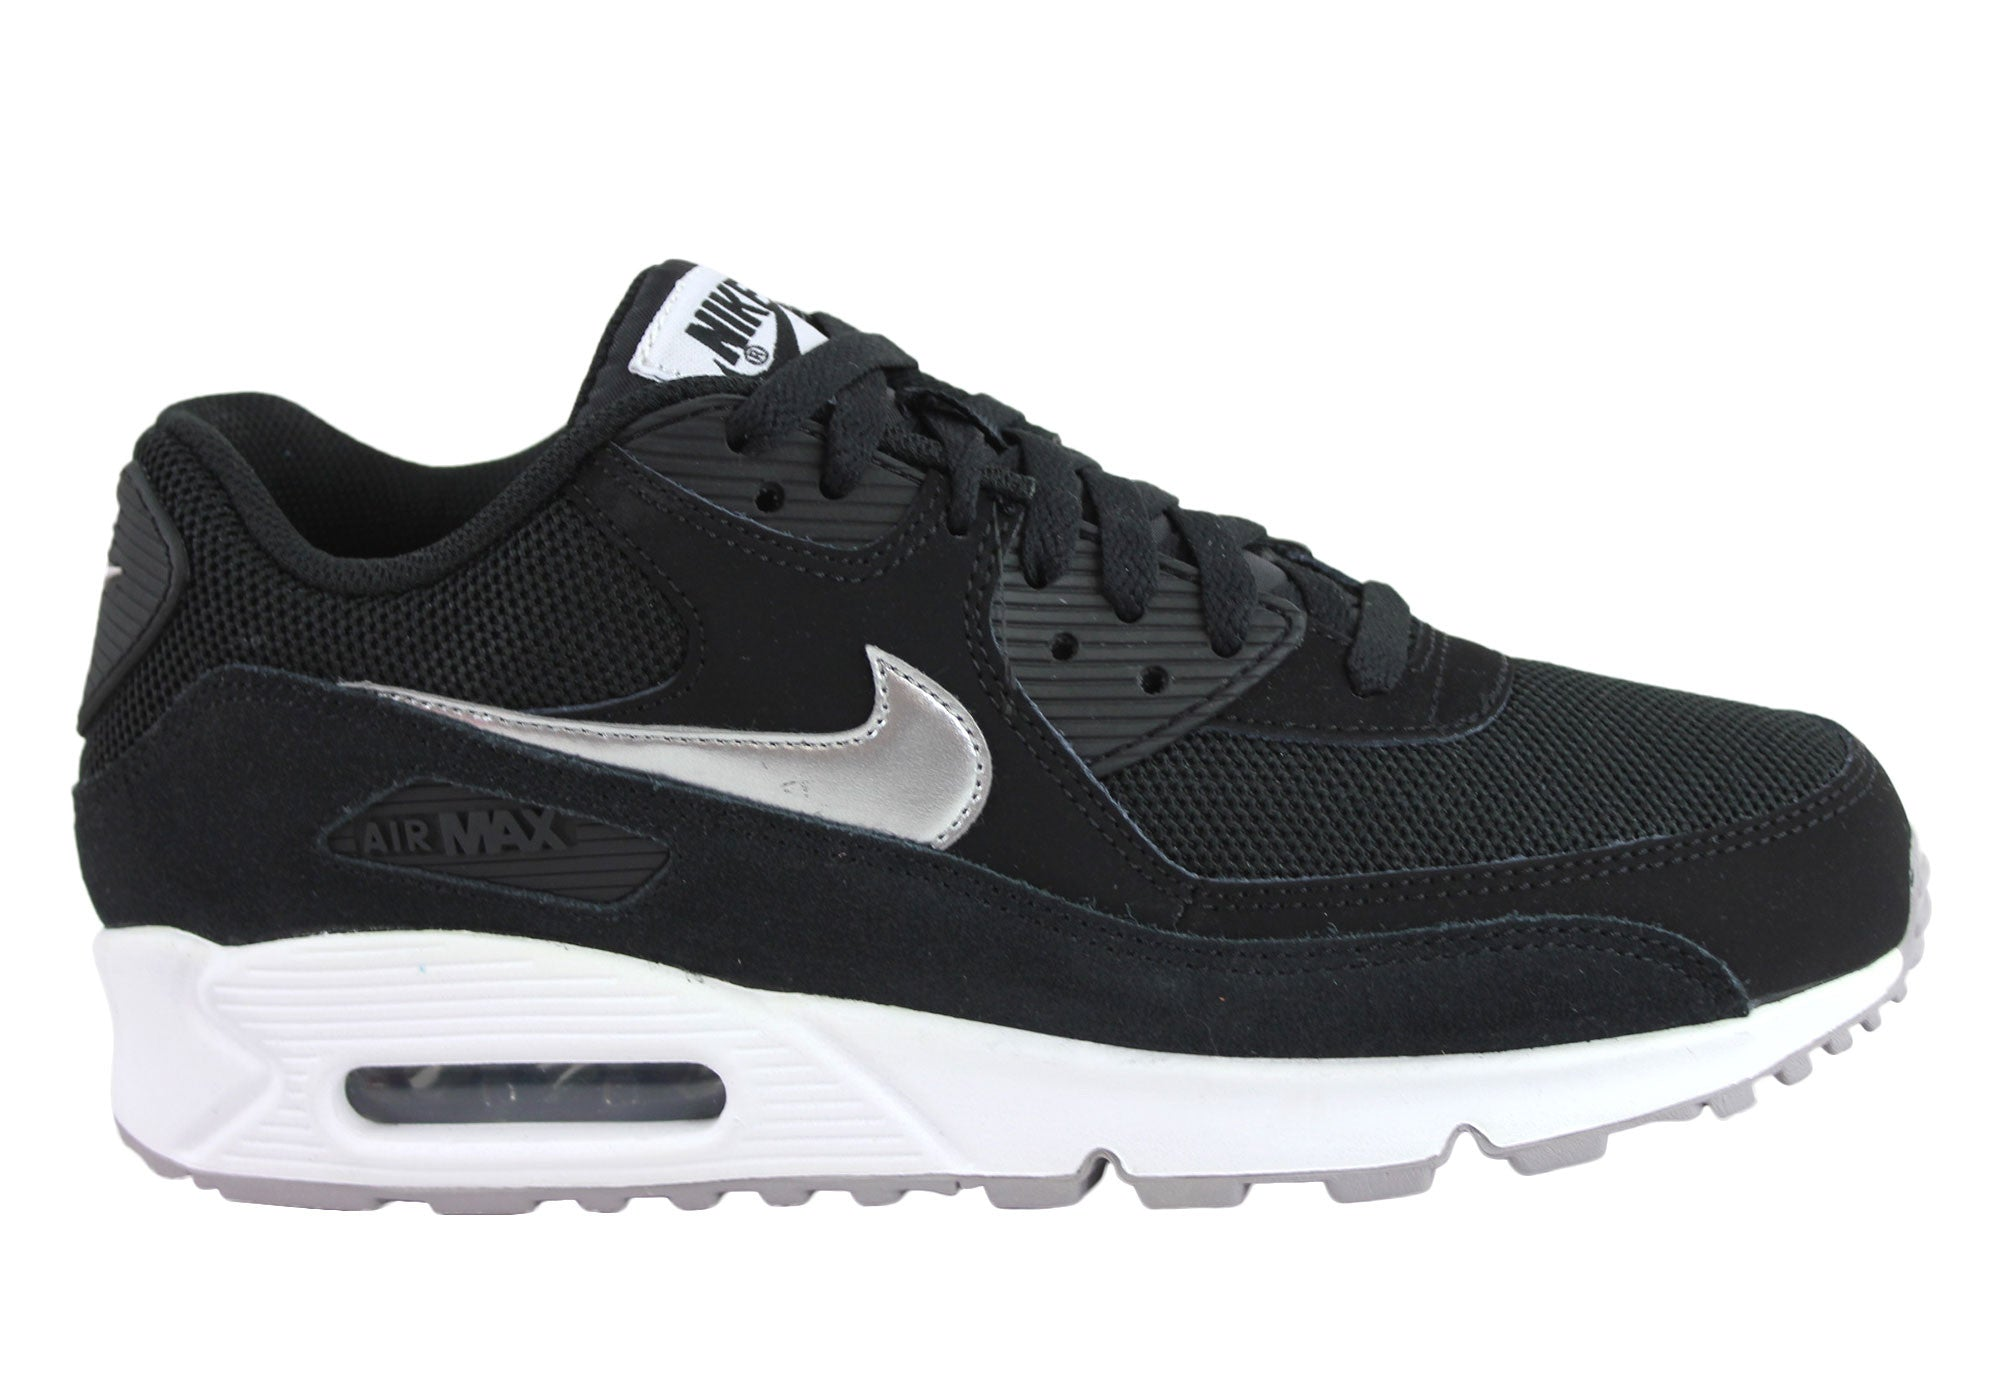 NEW NIKE AIR MAX MENS 90 ESSENTIAL MENS MAX SPORT/RETRO CLASSIC STYLE SHOES eaa8f1